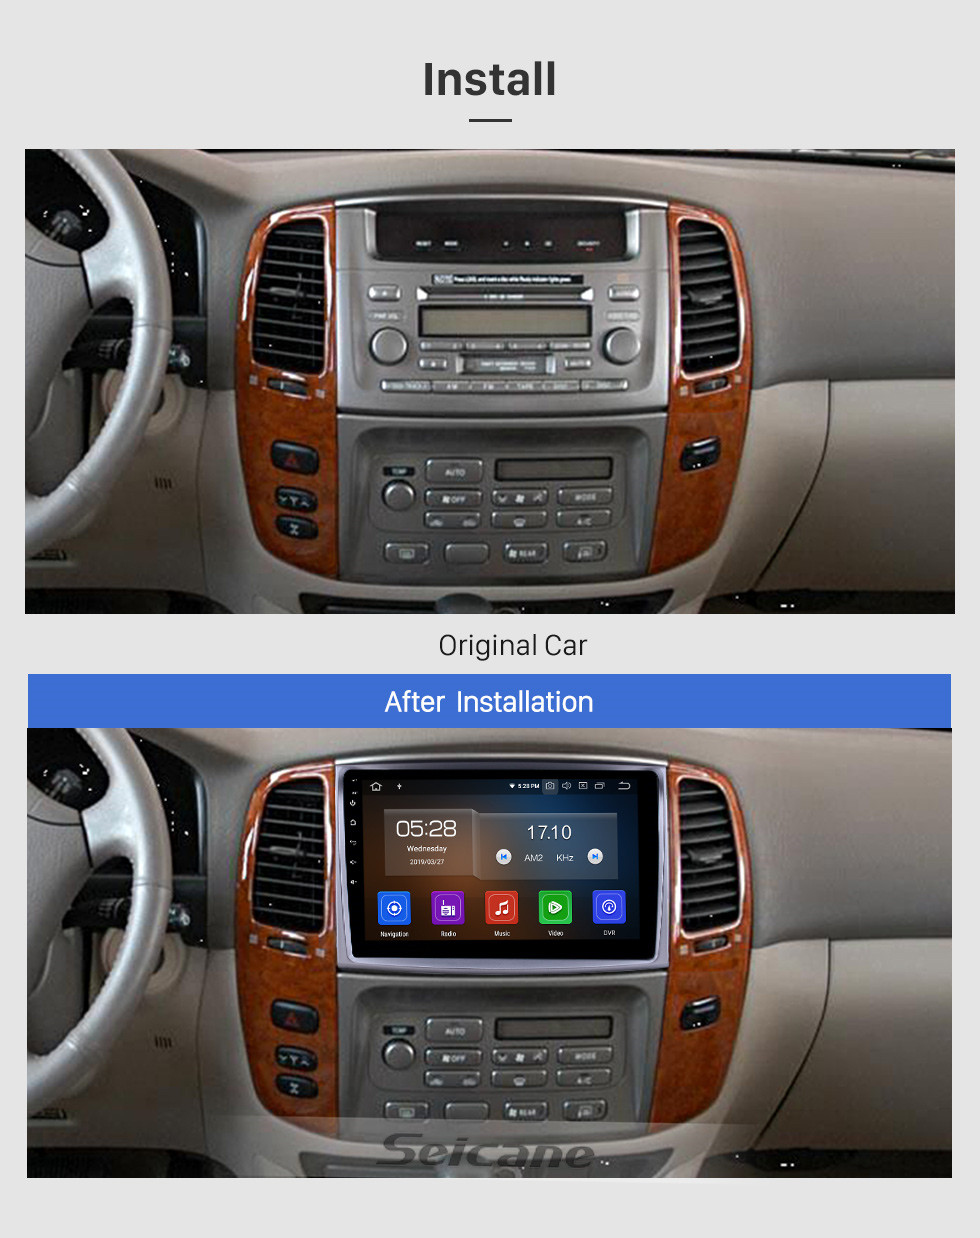 Seicane 10.1 inch 2006 Toyota Cruiser Android 9.0 GPS Navigation Radio Bluetooth HD Touchscreen AUX Carplay support Mirror Link